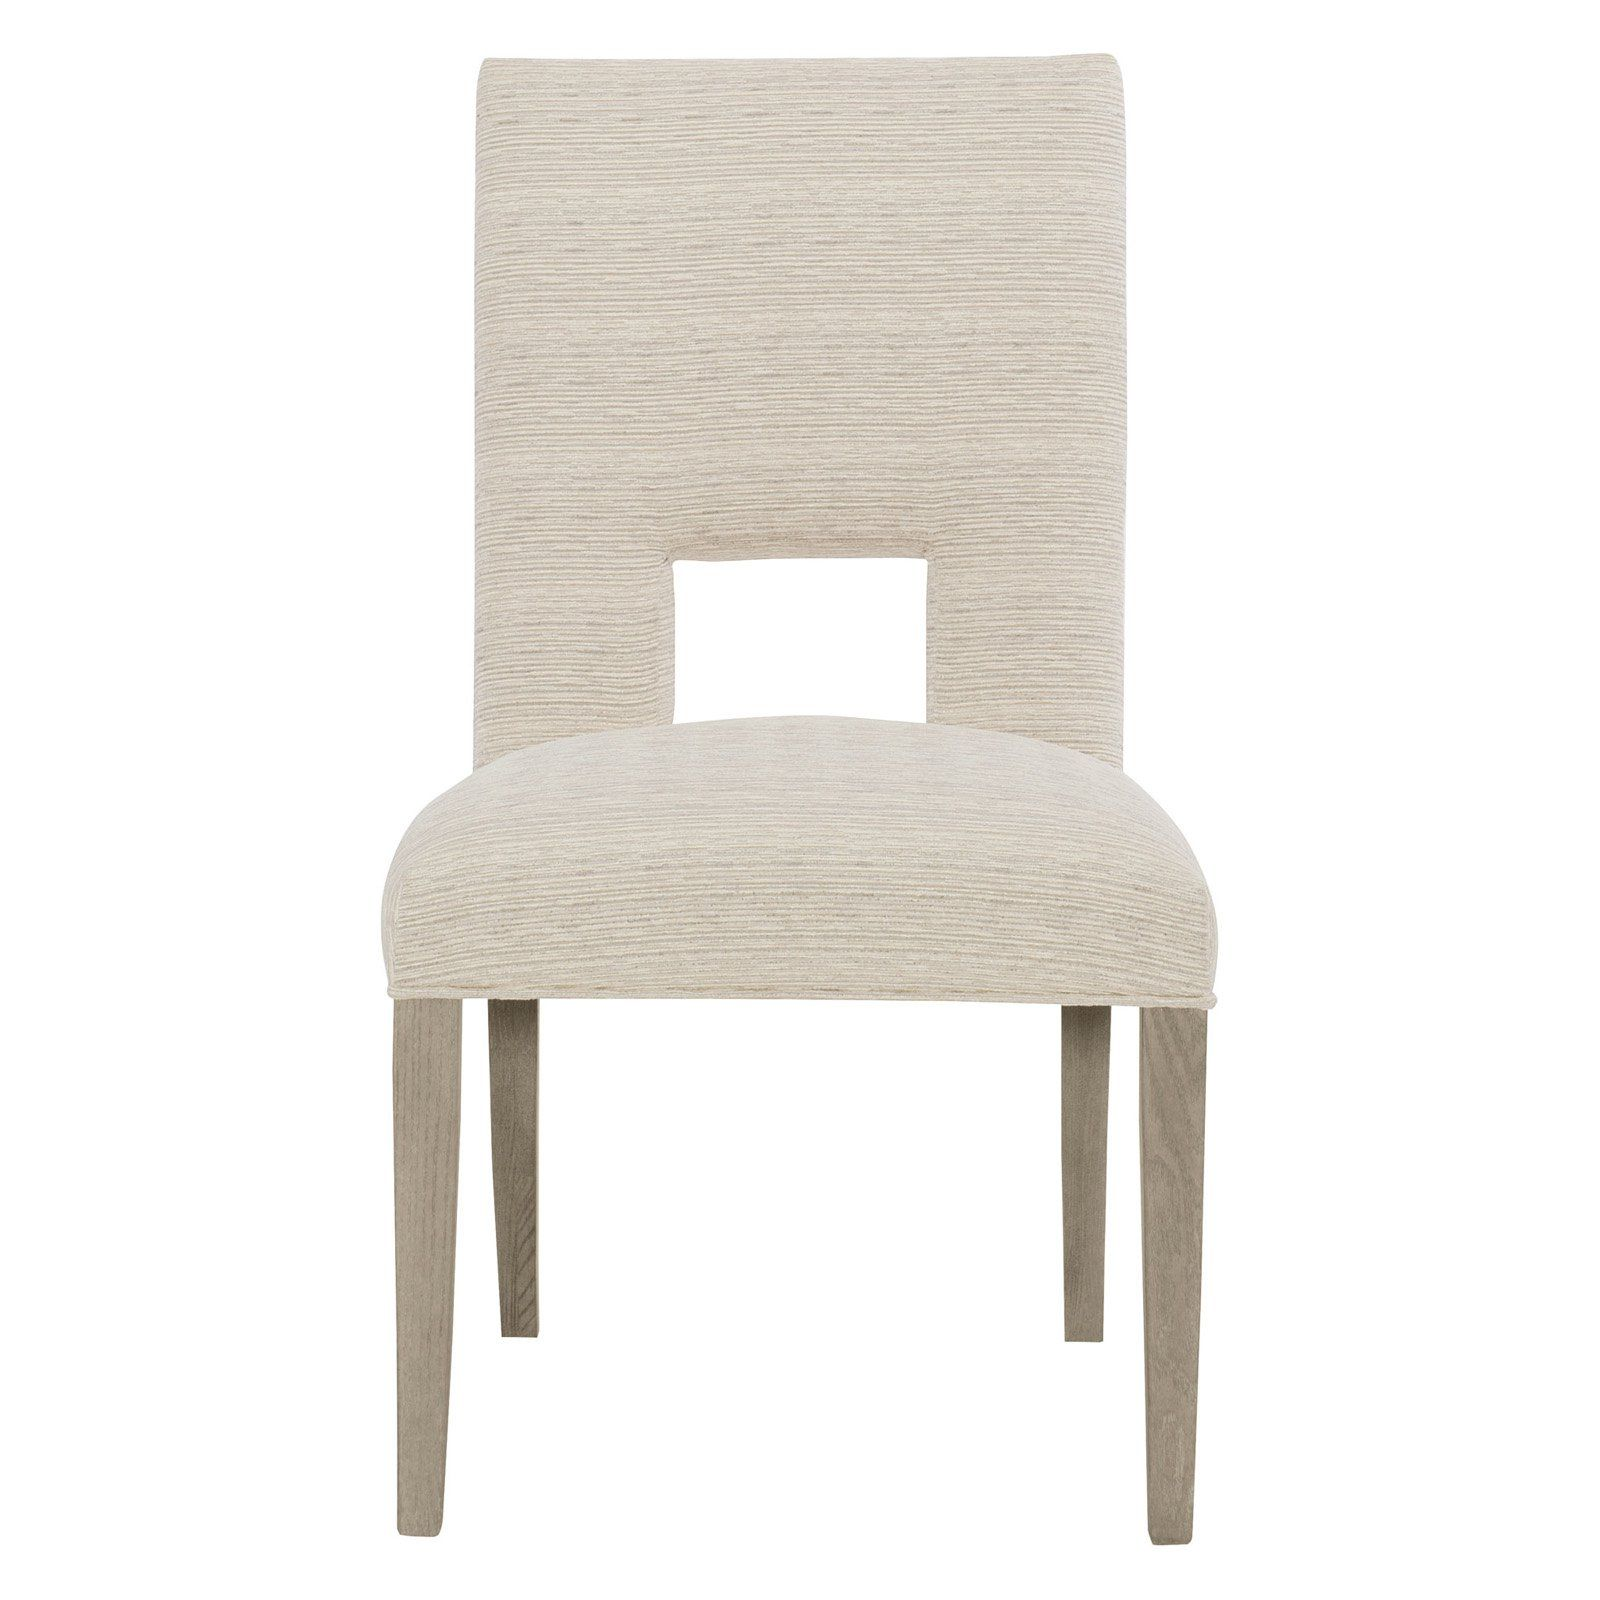 Bernhardt Mosaic Upholstered Keyhole Dining Side Chair